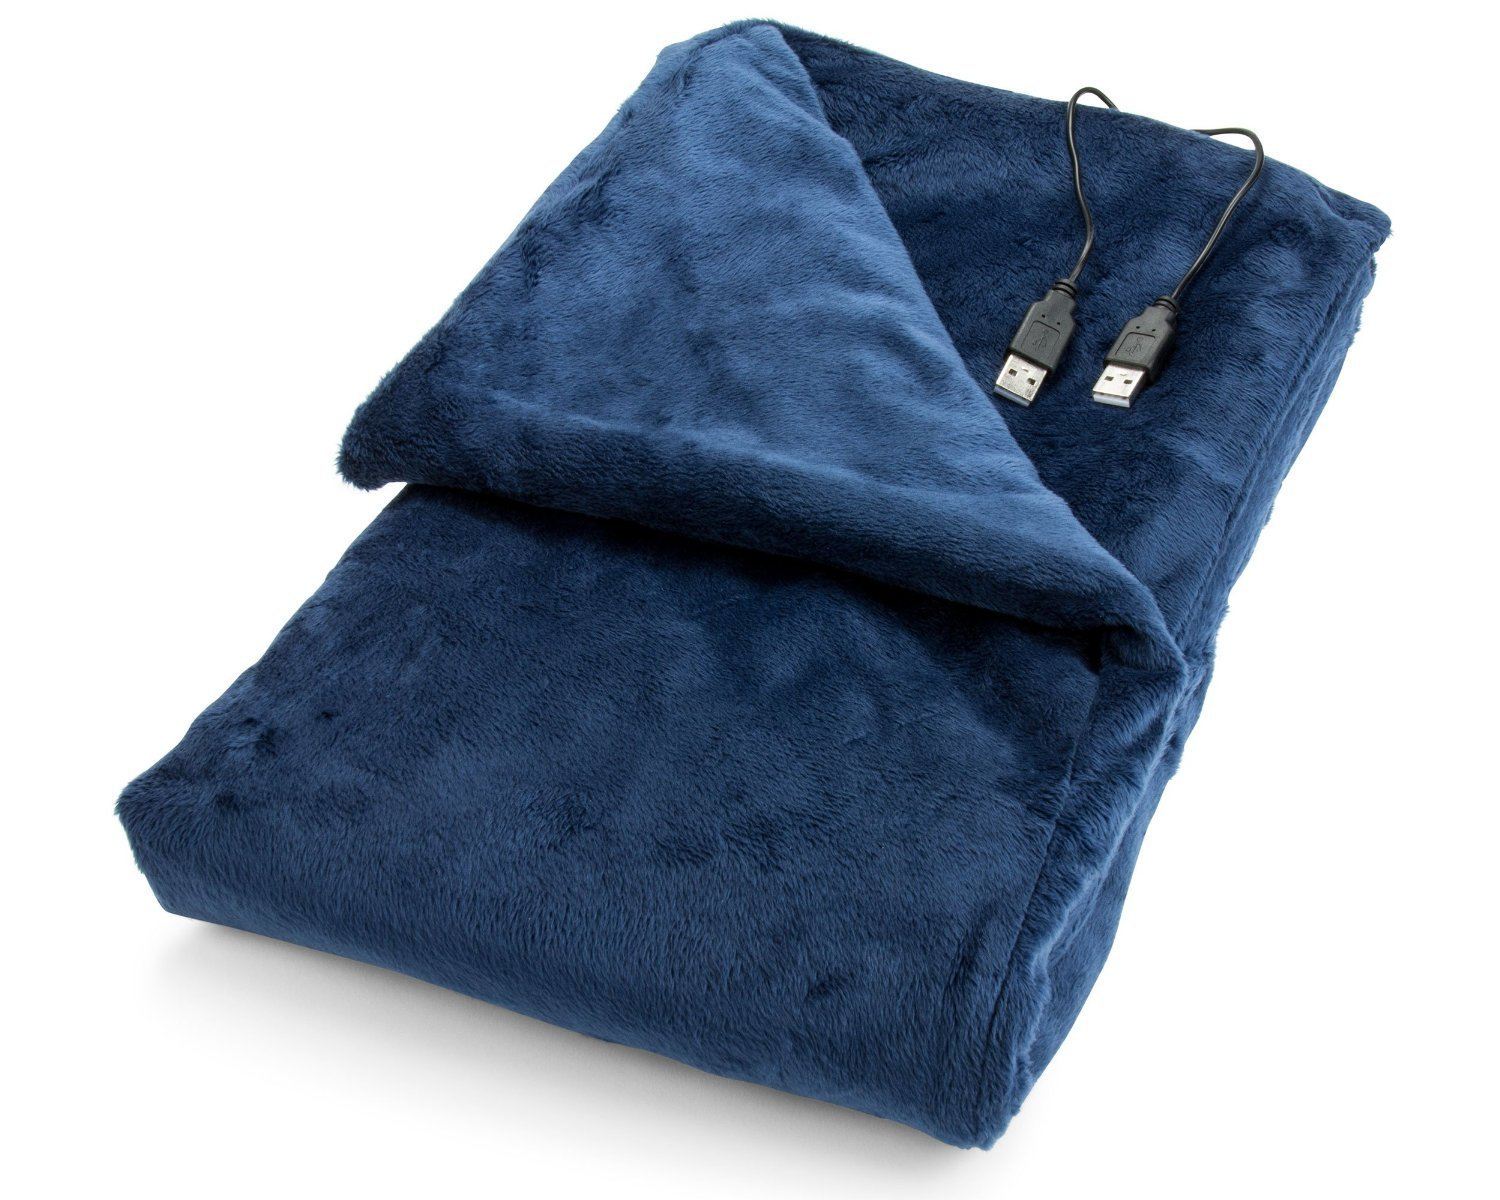 Biddeford Heated Throw | Biddeford Heated Blanket | Biddeford Electric Blanket